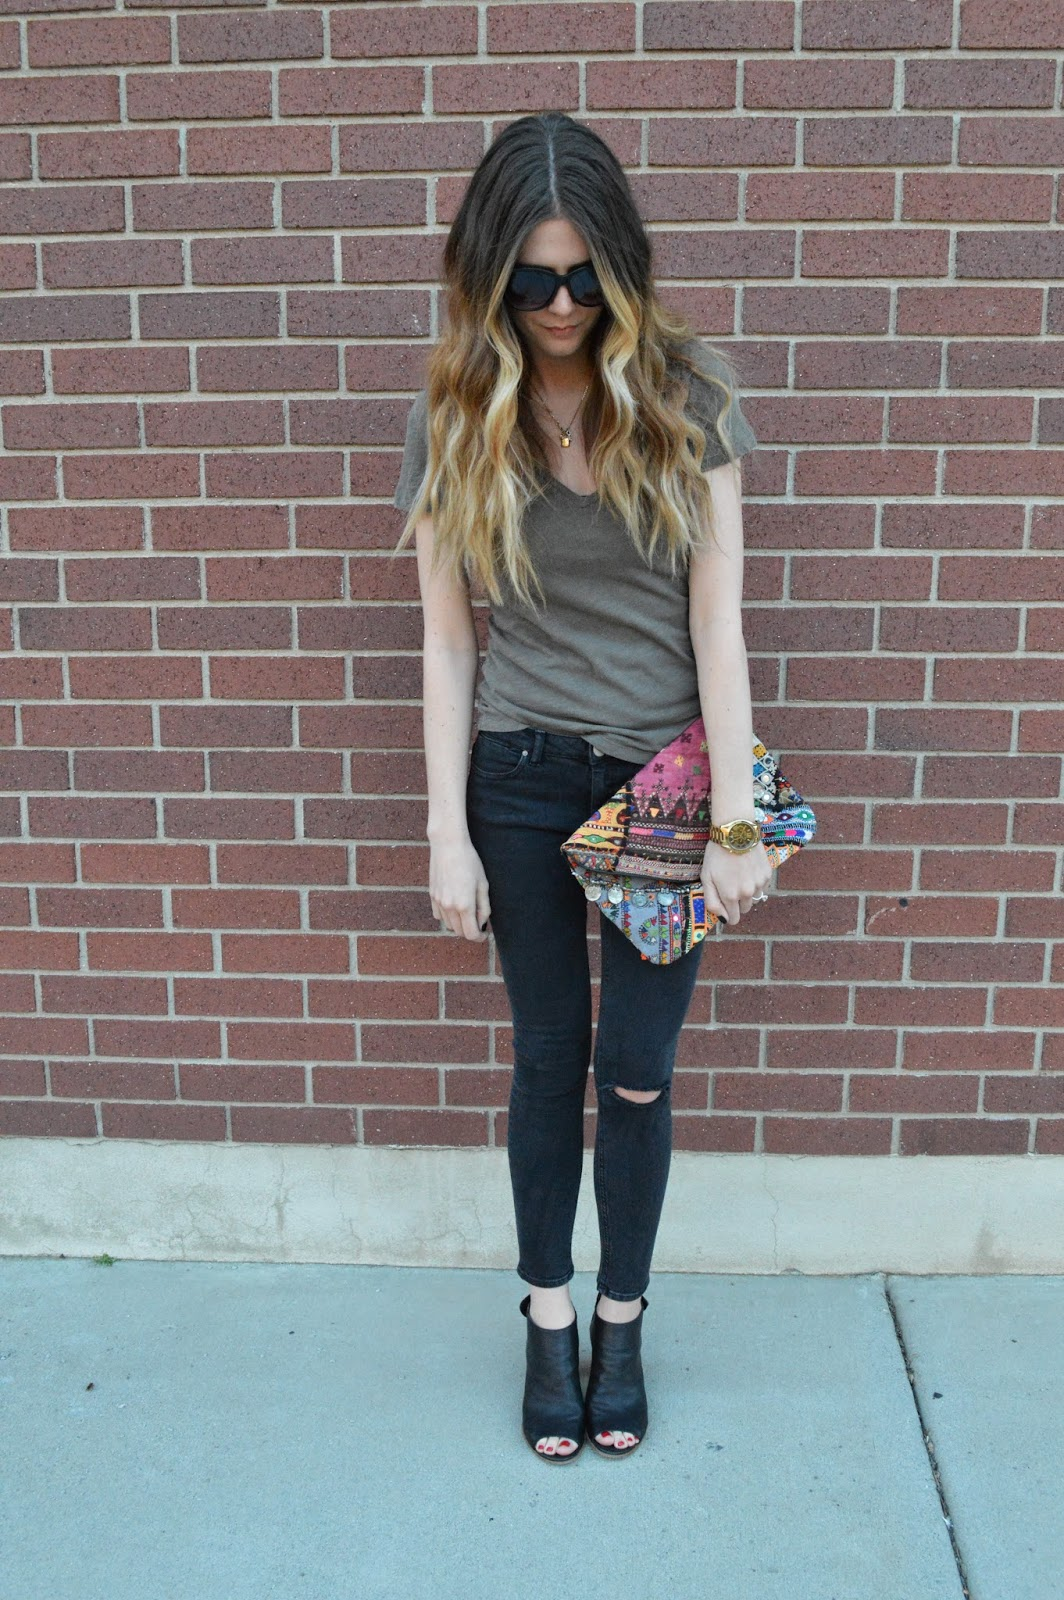 Black Distressed Jeans Outfit | Www.imgkid.com - The Image Kid Has It!